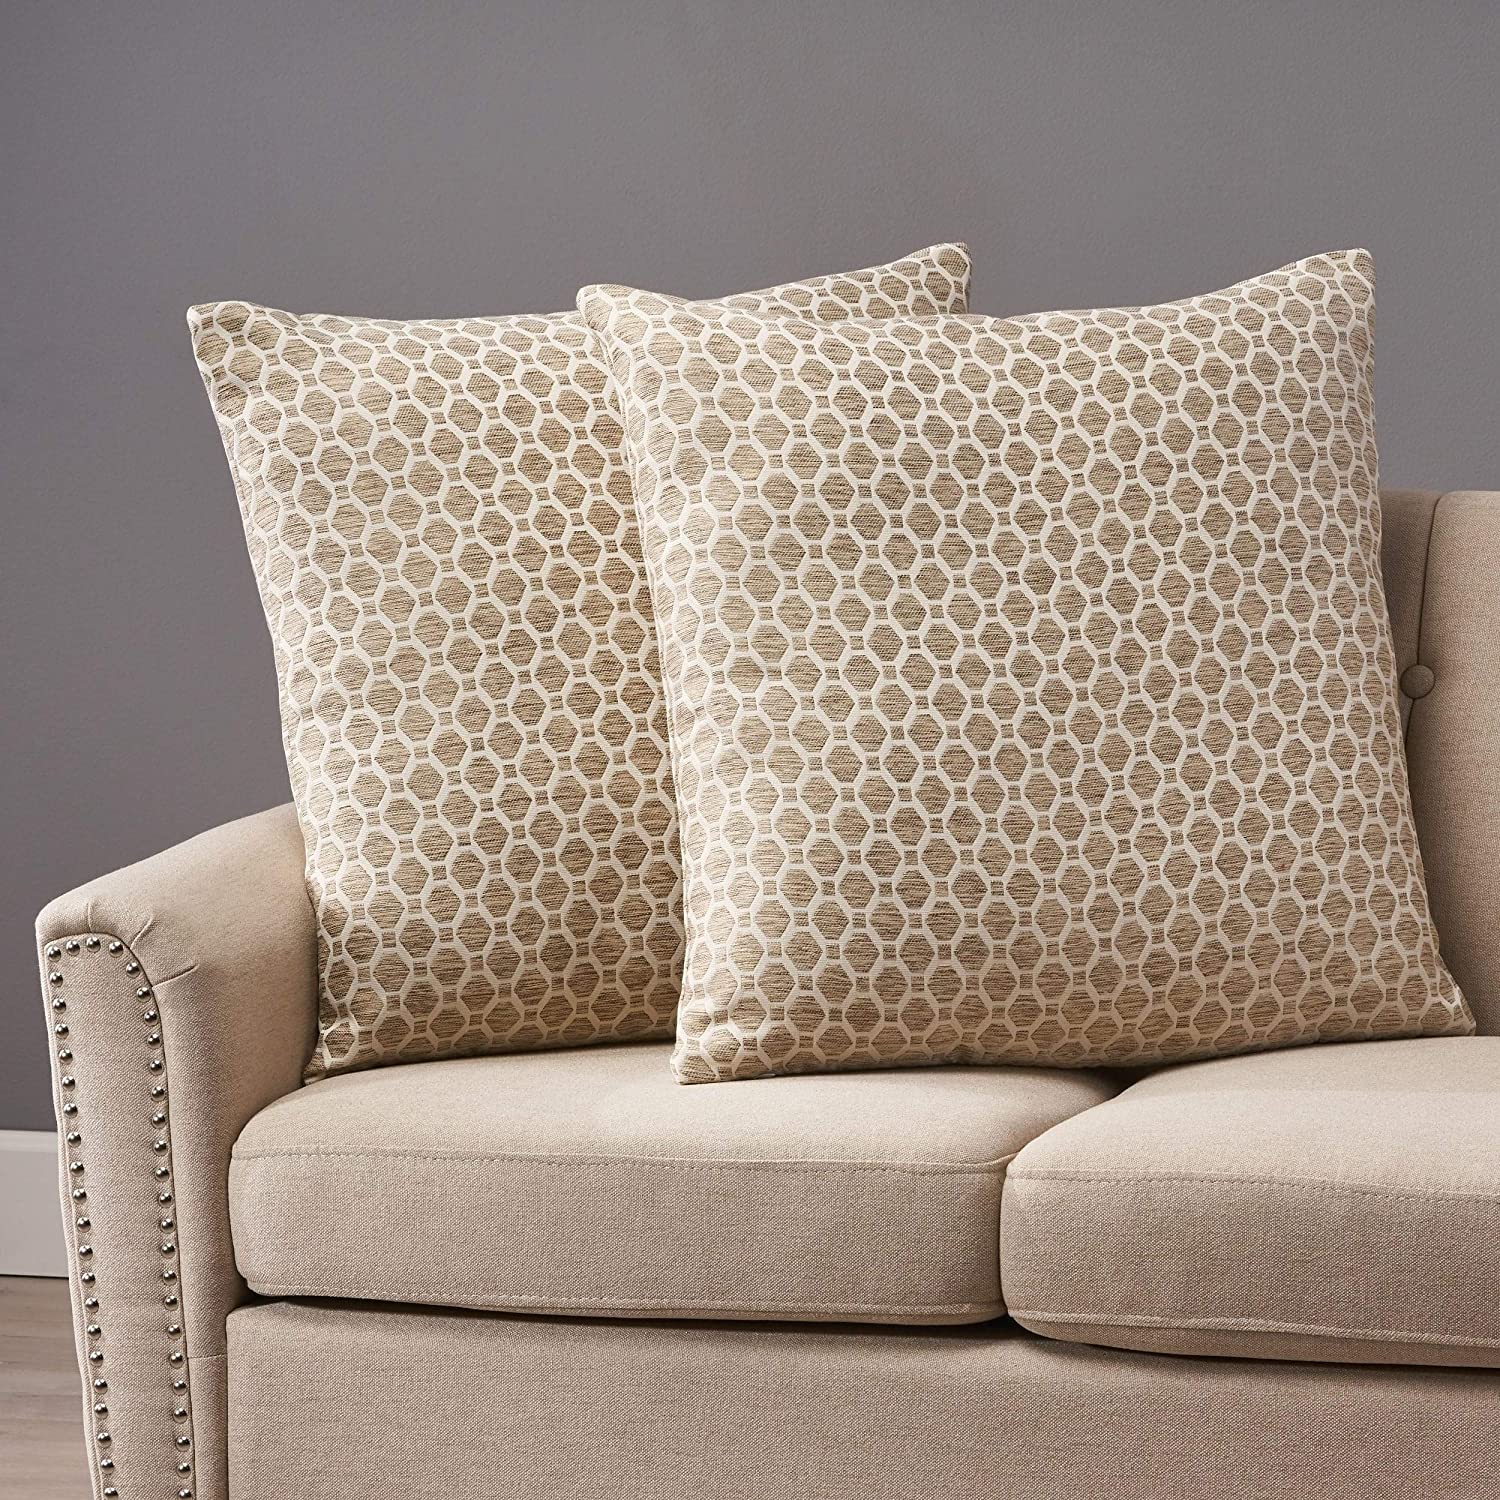 Modern Fabric Throw Pillows (Set of 2) by Beige Brown Geometric Contemporary Polyester Set of 2 Removable Cover